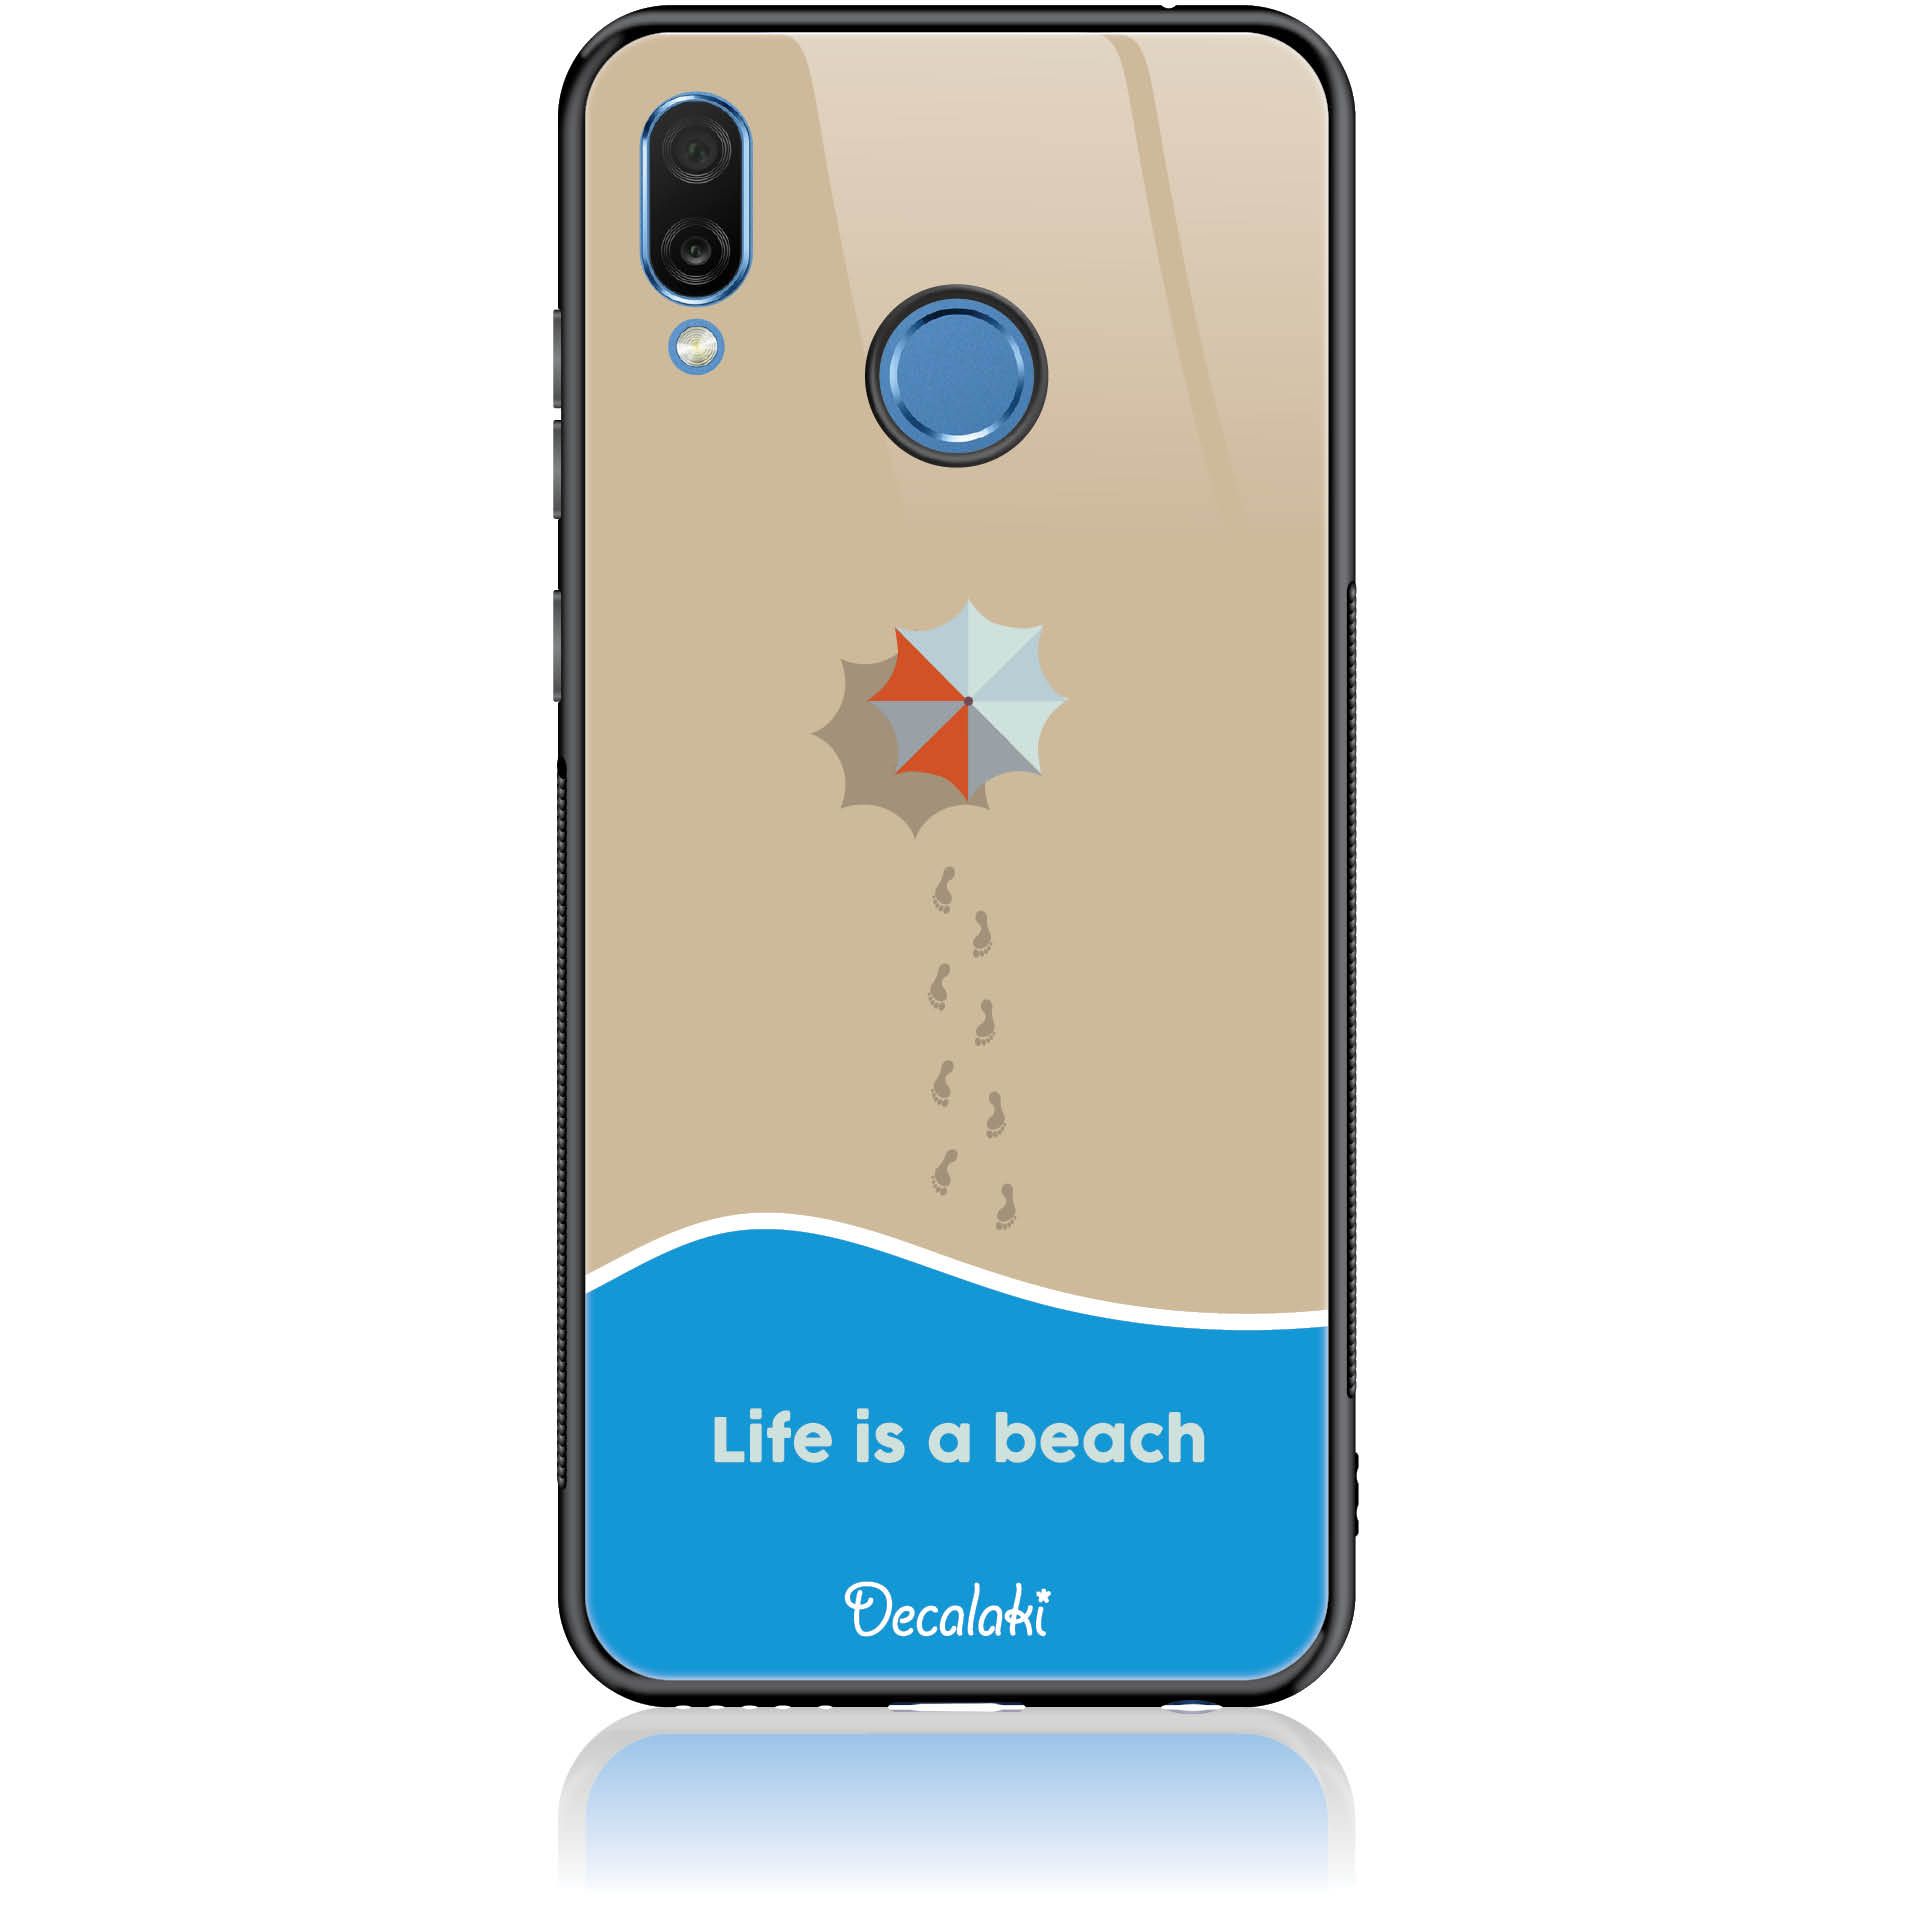 Life Is A Beach Phone Case Design 50430  -  Honor Play  -  Tempered Glass Case